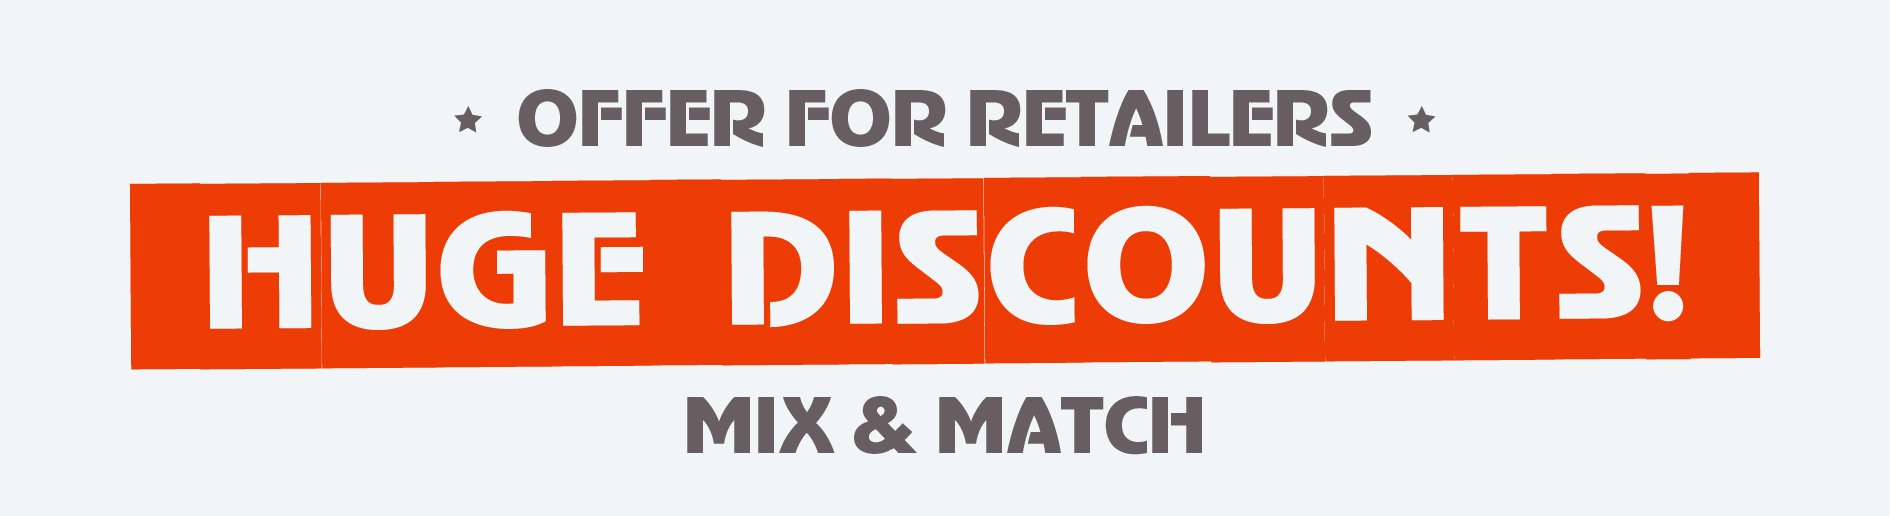 Banner with mix & match discount offer for retailers